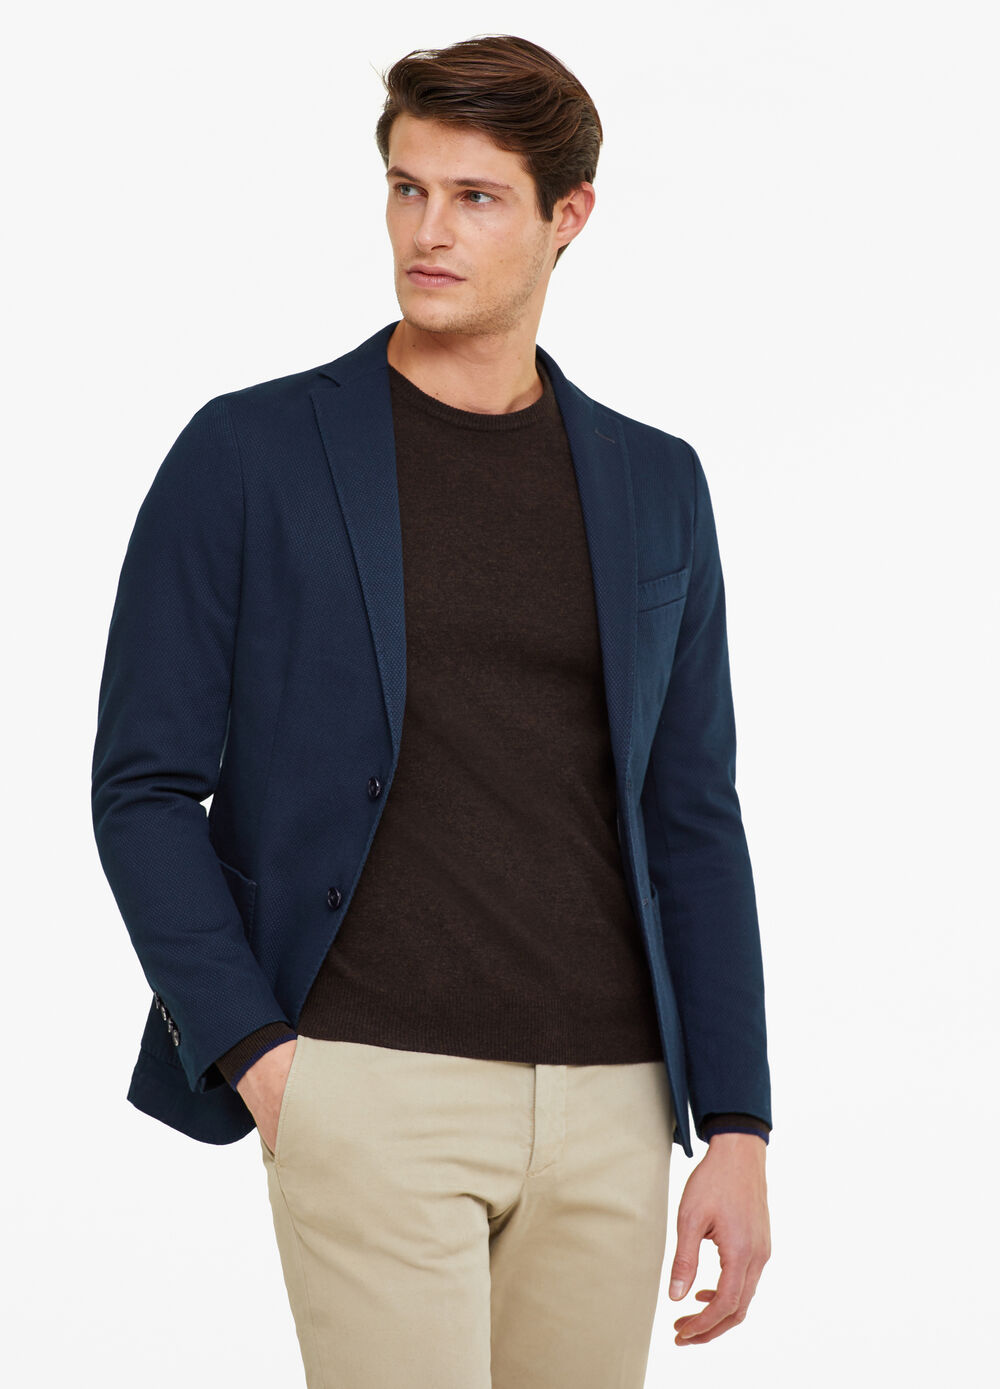 Rumford two-button blazer